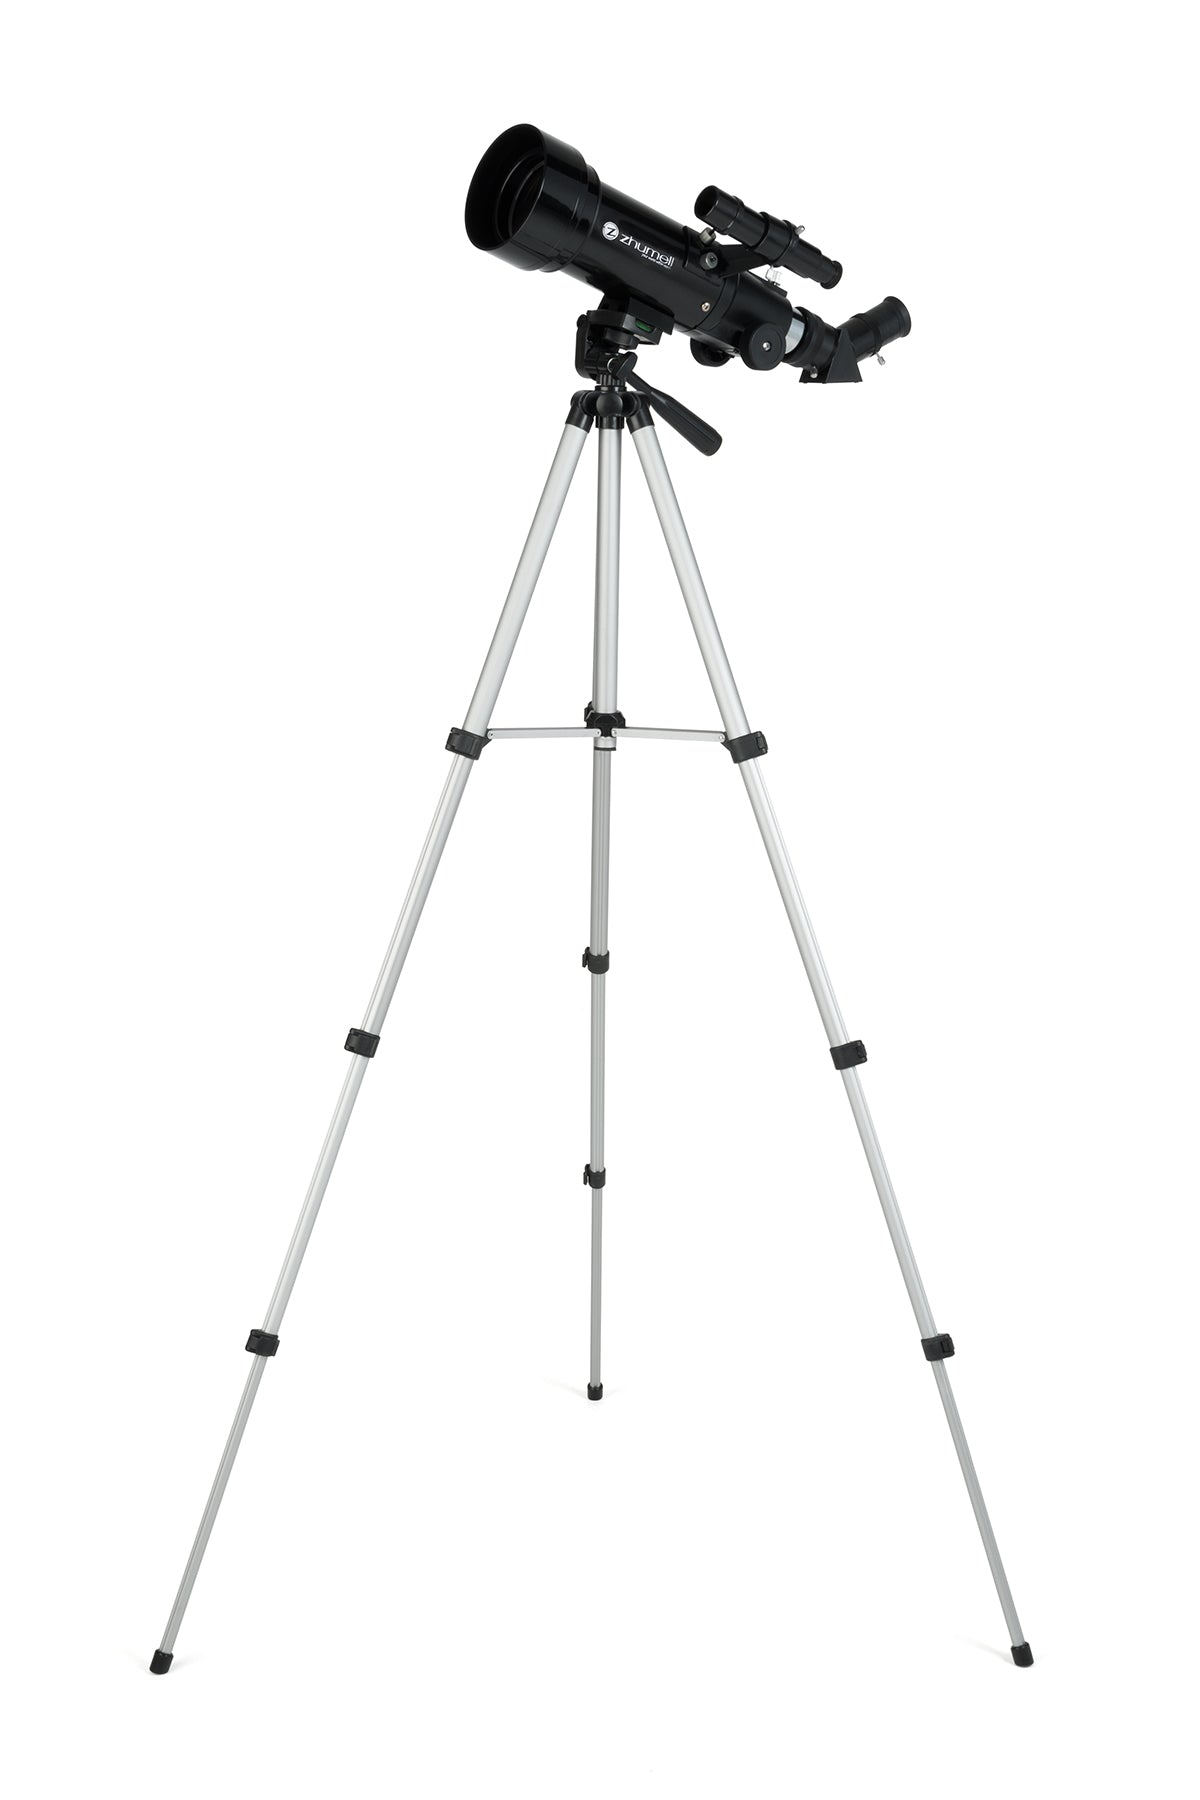 Zhumell Portable 70mm AZ Refractor Telescope with